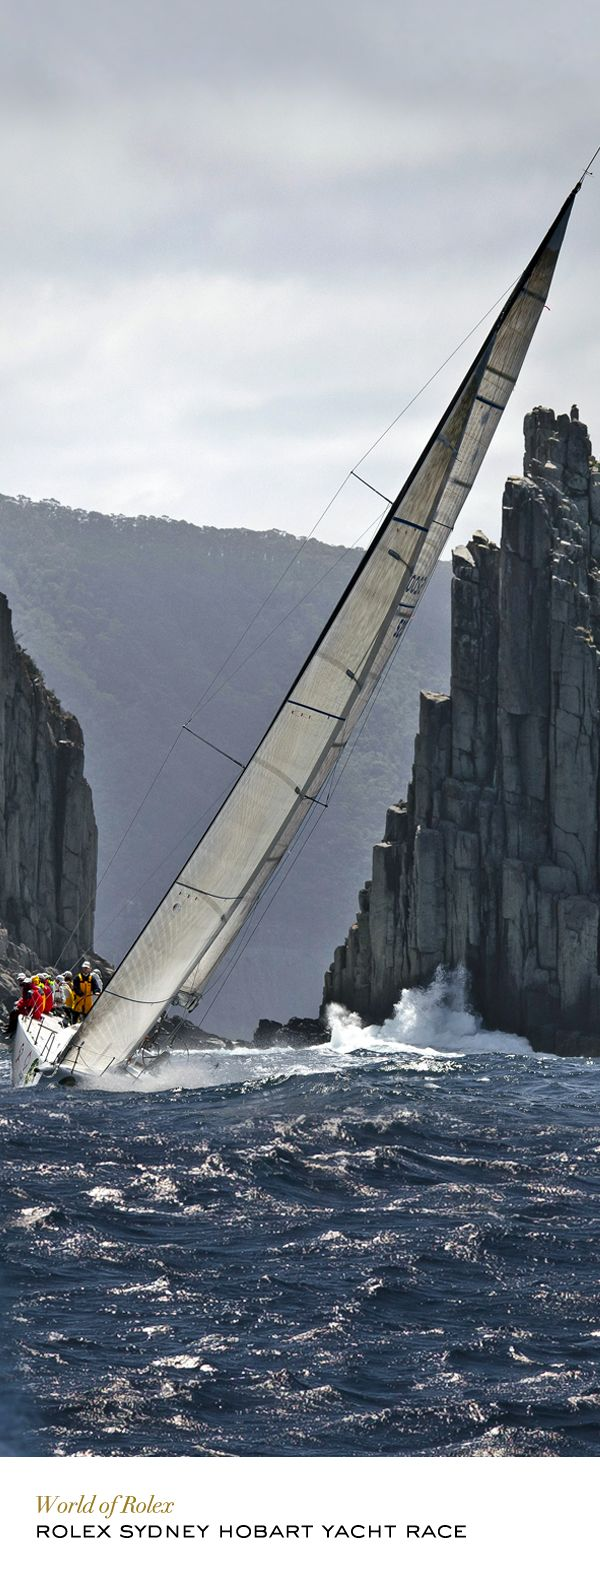 As one of the world's toughest offshore yacht races, the Rolex Sydney Hobart requires strength and the determination to excel. #RolexOfficial